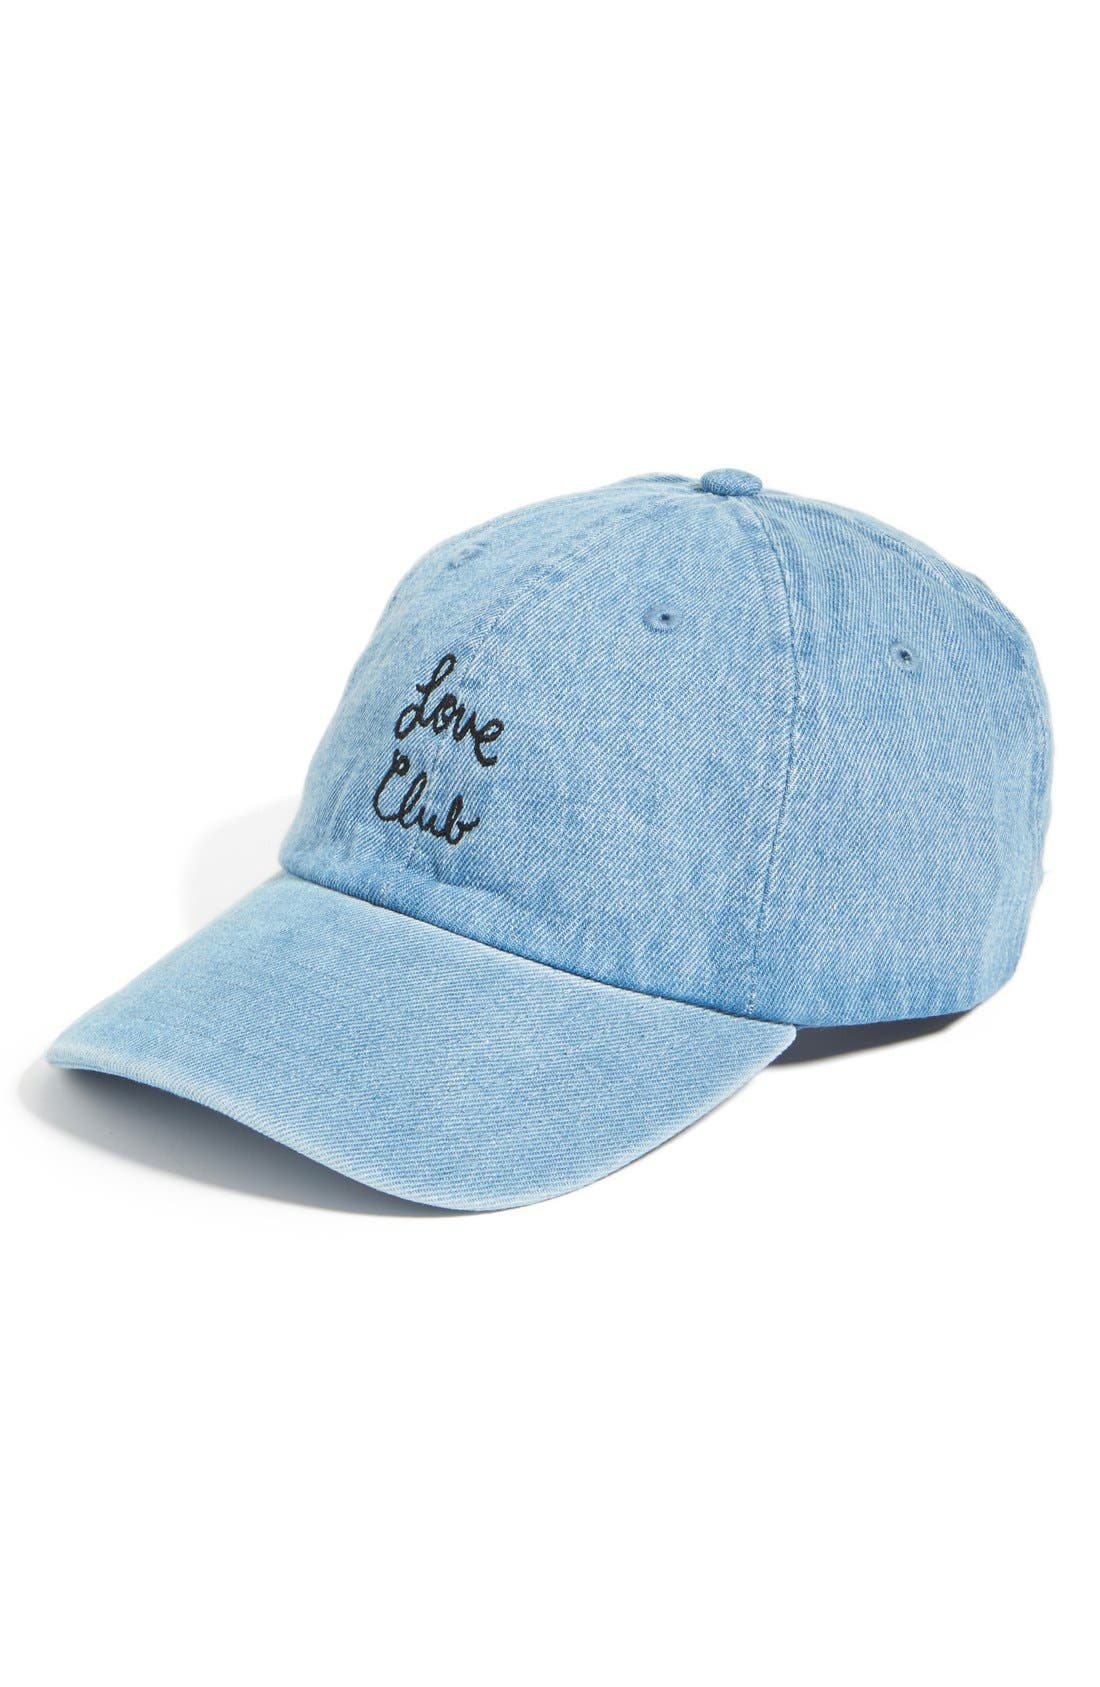 Main Image - The Style Club Love Club Baseball Cap